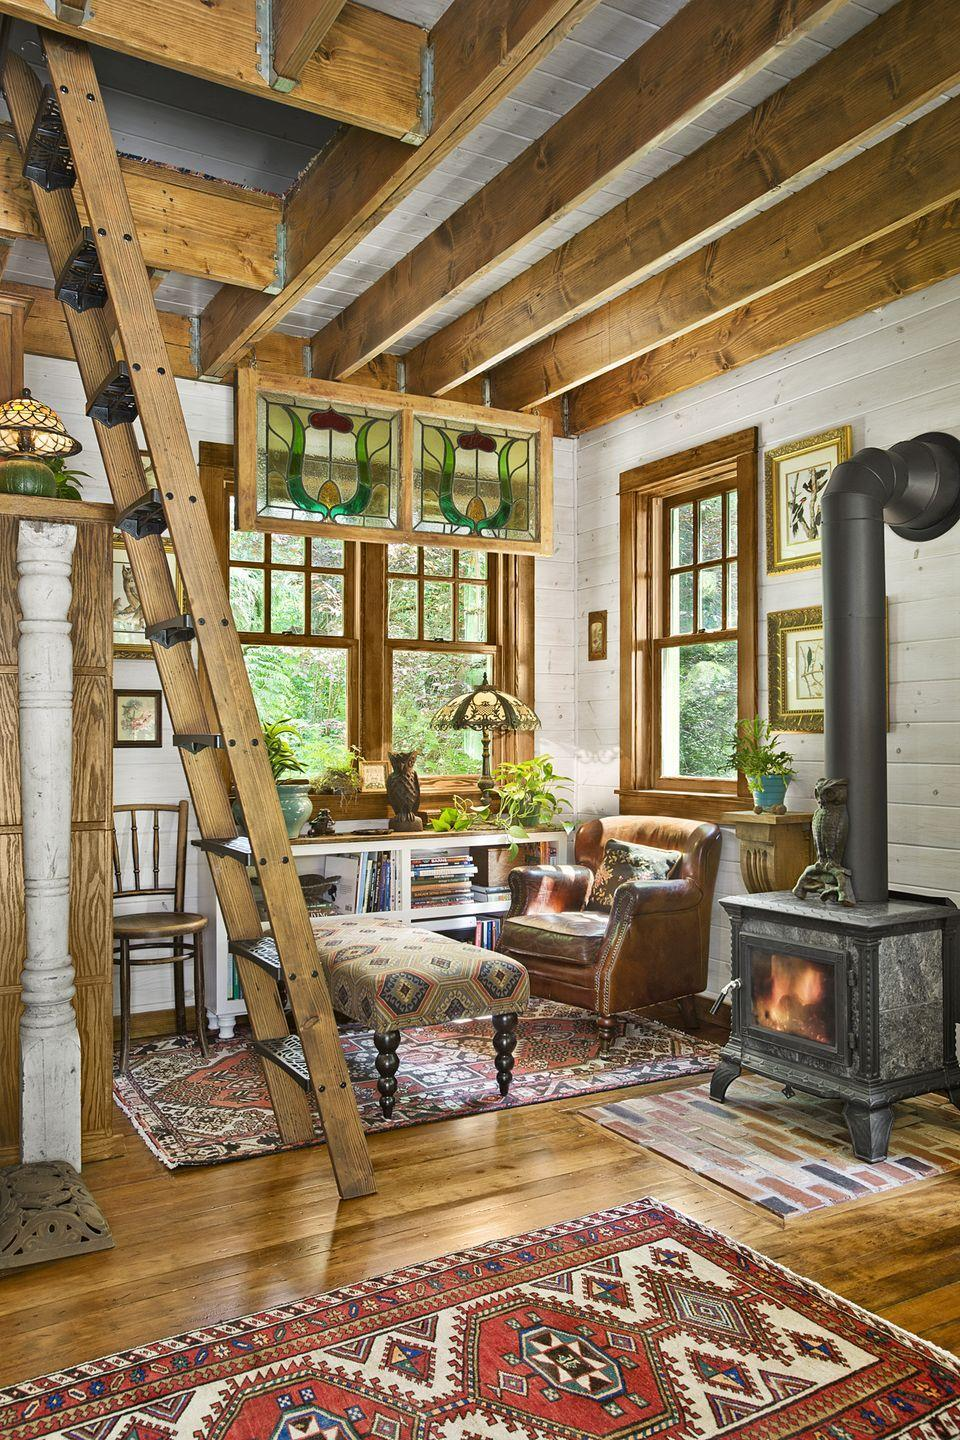 """<p>When square footage is tight, it helps if statement pieces are both charming and useful. An old wood-burning stove brings a vintage vibe to new construction and also heats the entire place.</p><p><a class=""""link rapid-noclick-resp"""" href=""""https://www.amazon.com/Tiny-House-Living-Building-Square/dp/1440333165/?tag=syn-yahoo-20&ascsubtag=%5Bartid%7C10050.g.1887%5Bsrc%7Cyahoo-us"""" rel=""""nofollow noopener"""" target=""""_blank"""" data-ylk=""""slk:SHOP TINY HOUSE BOOKS"""">SHOP TINY HOUSE BOOKS</a></p>"""